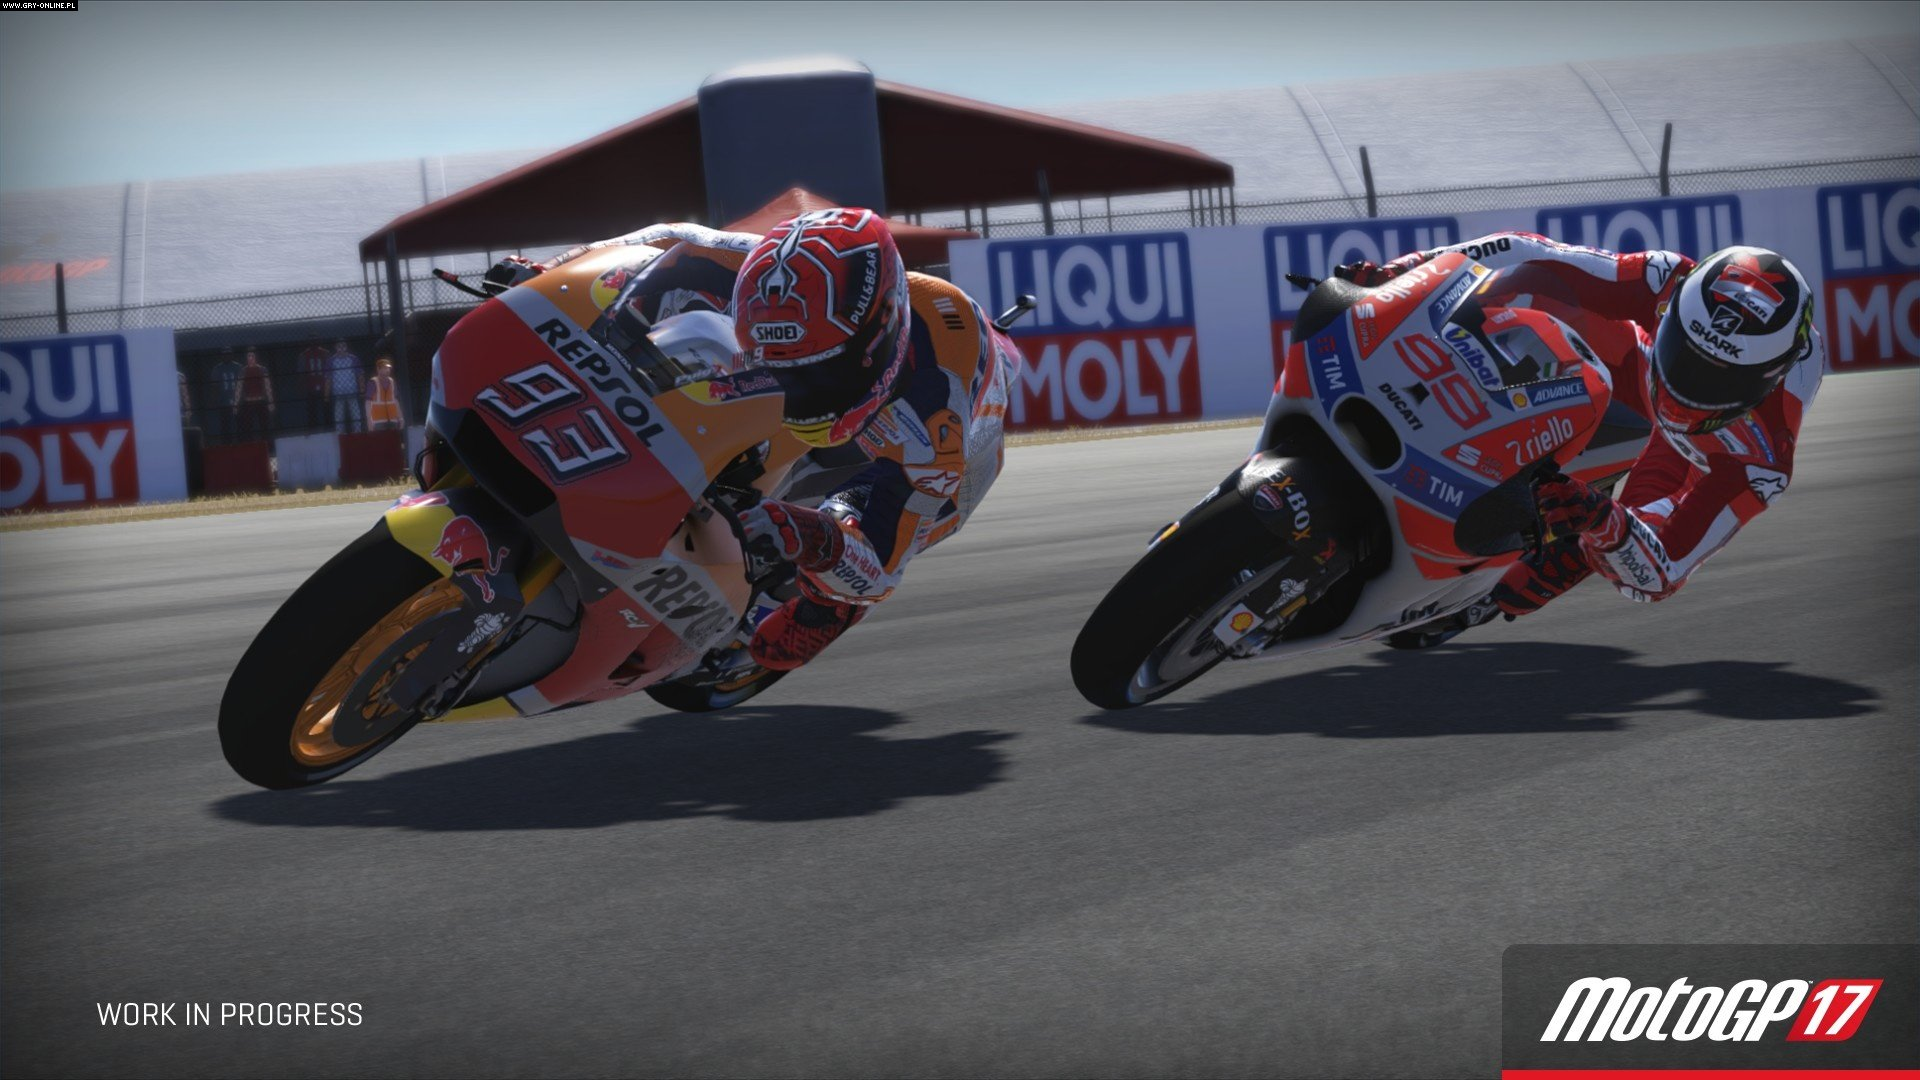 MotoGP 17 PC, PS4, XONE Gry Screen 51/71, Milestone